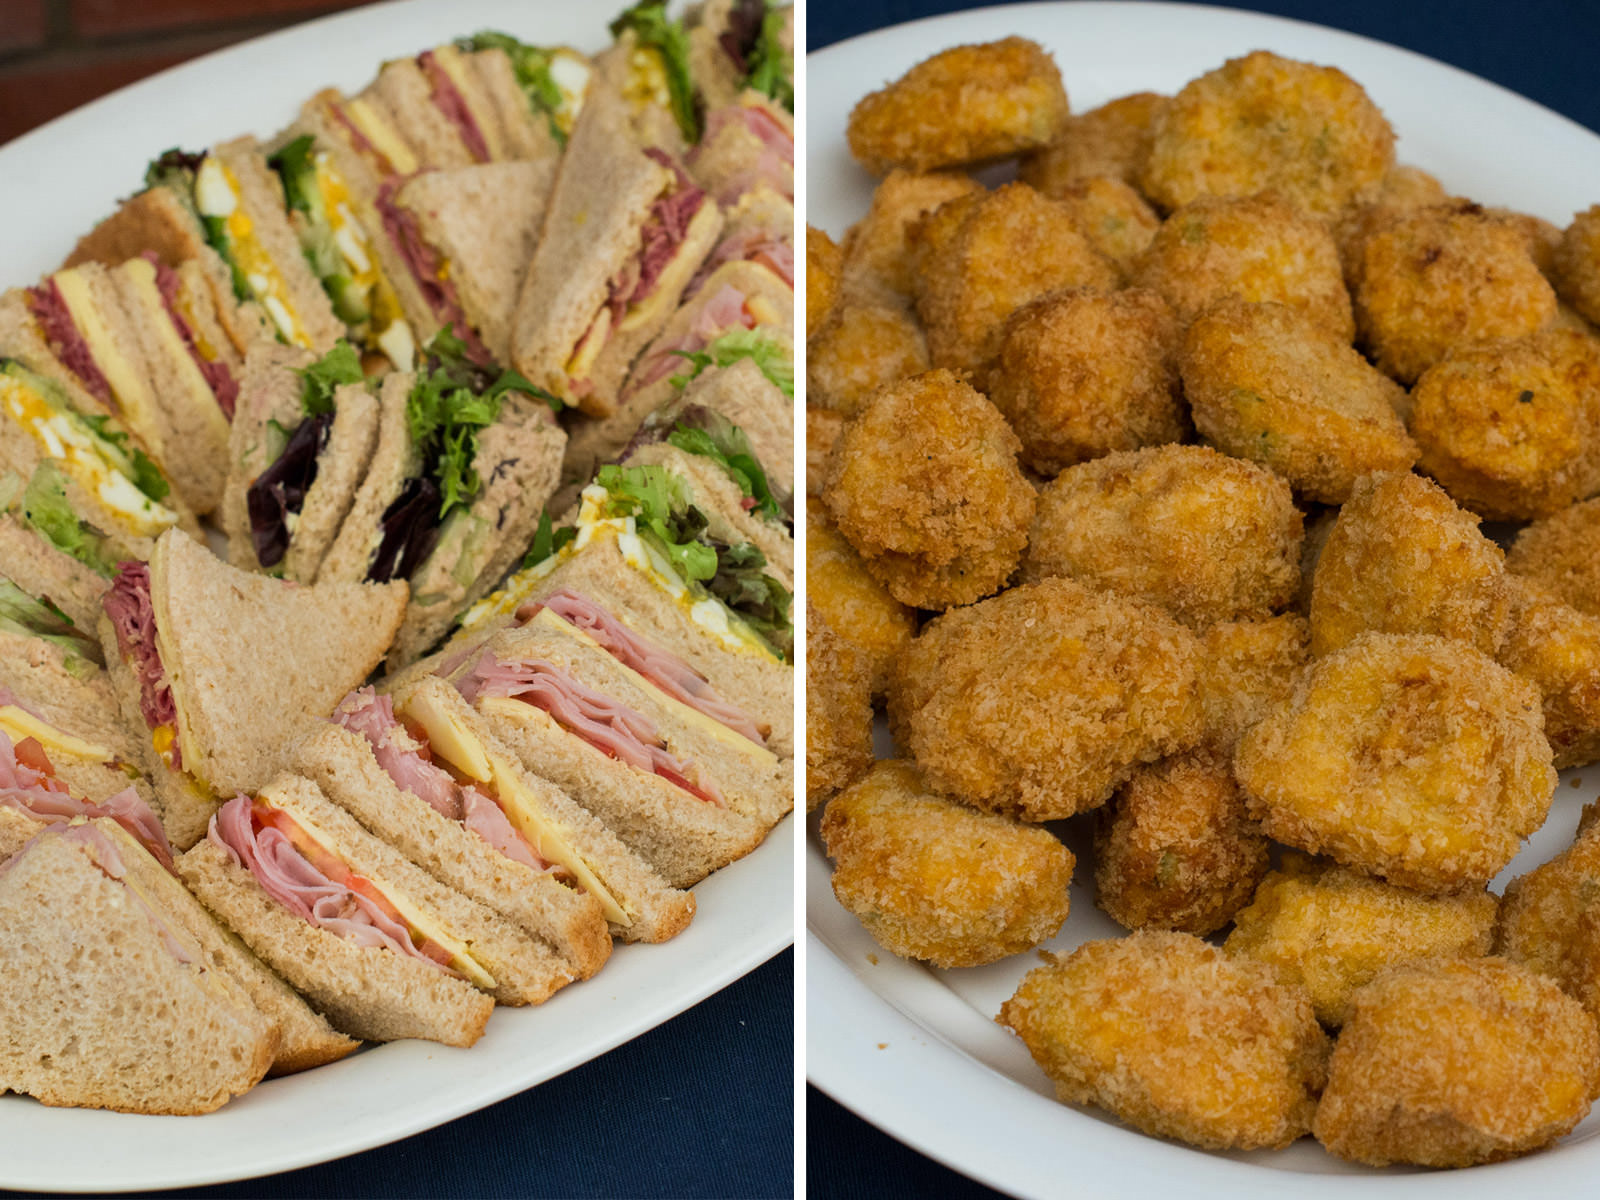 Sandwiches and arancini